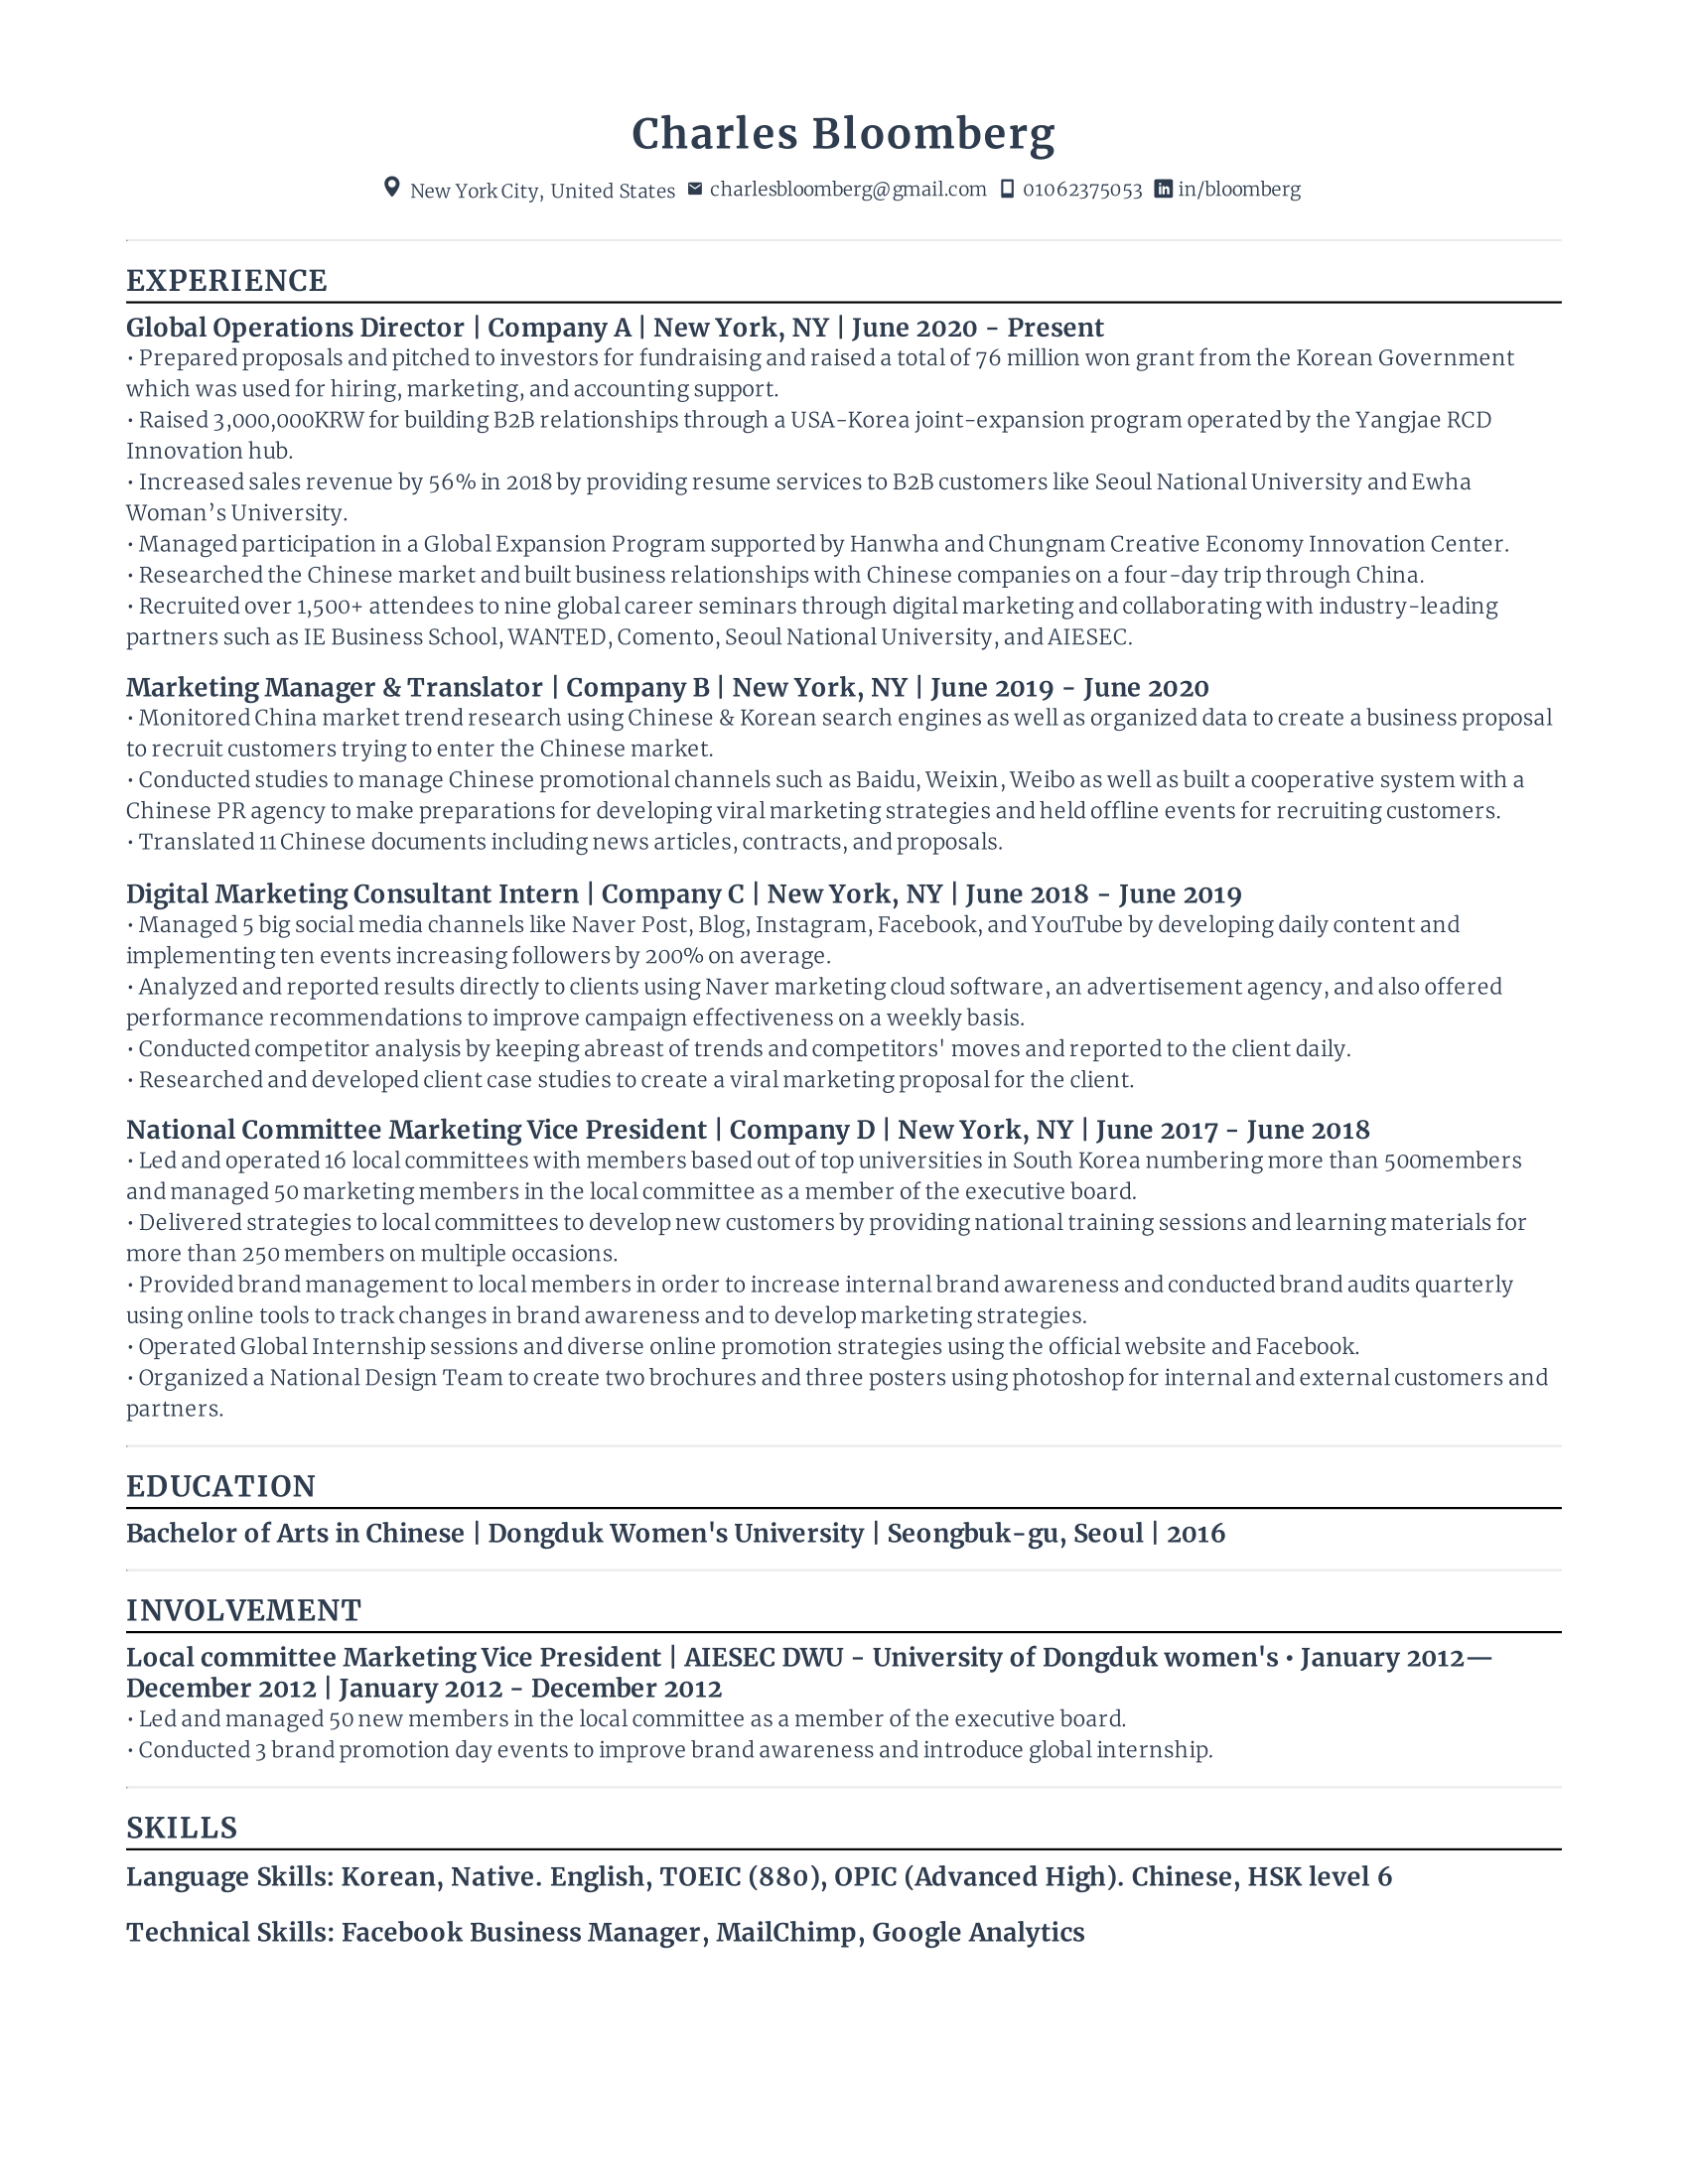 Global Operations Director Resume